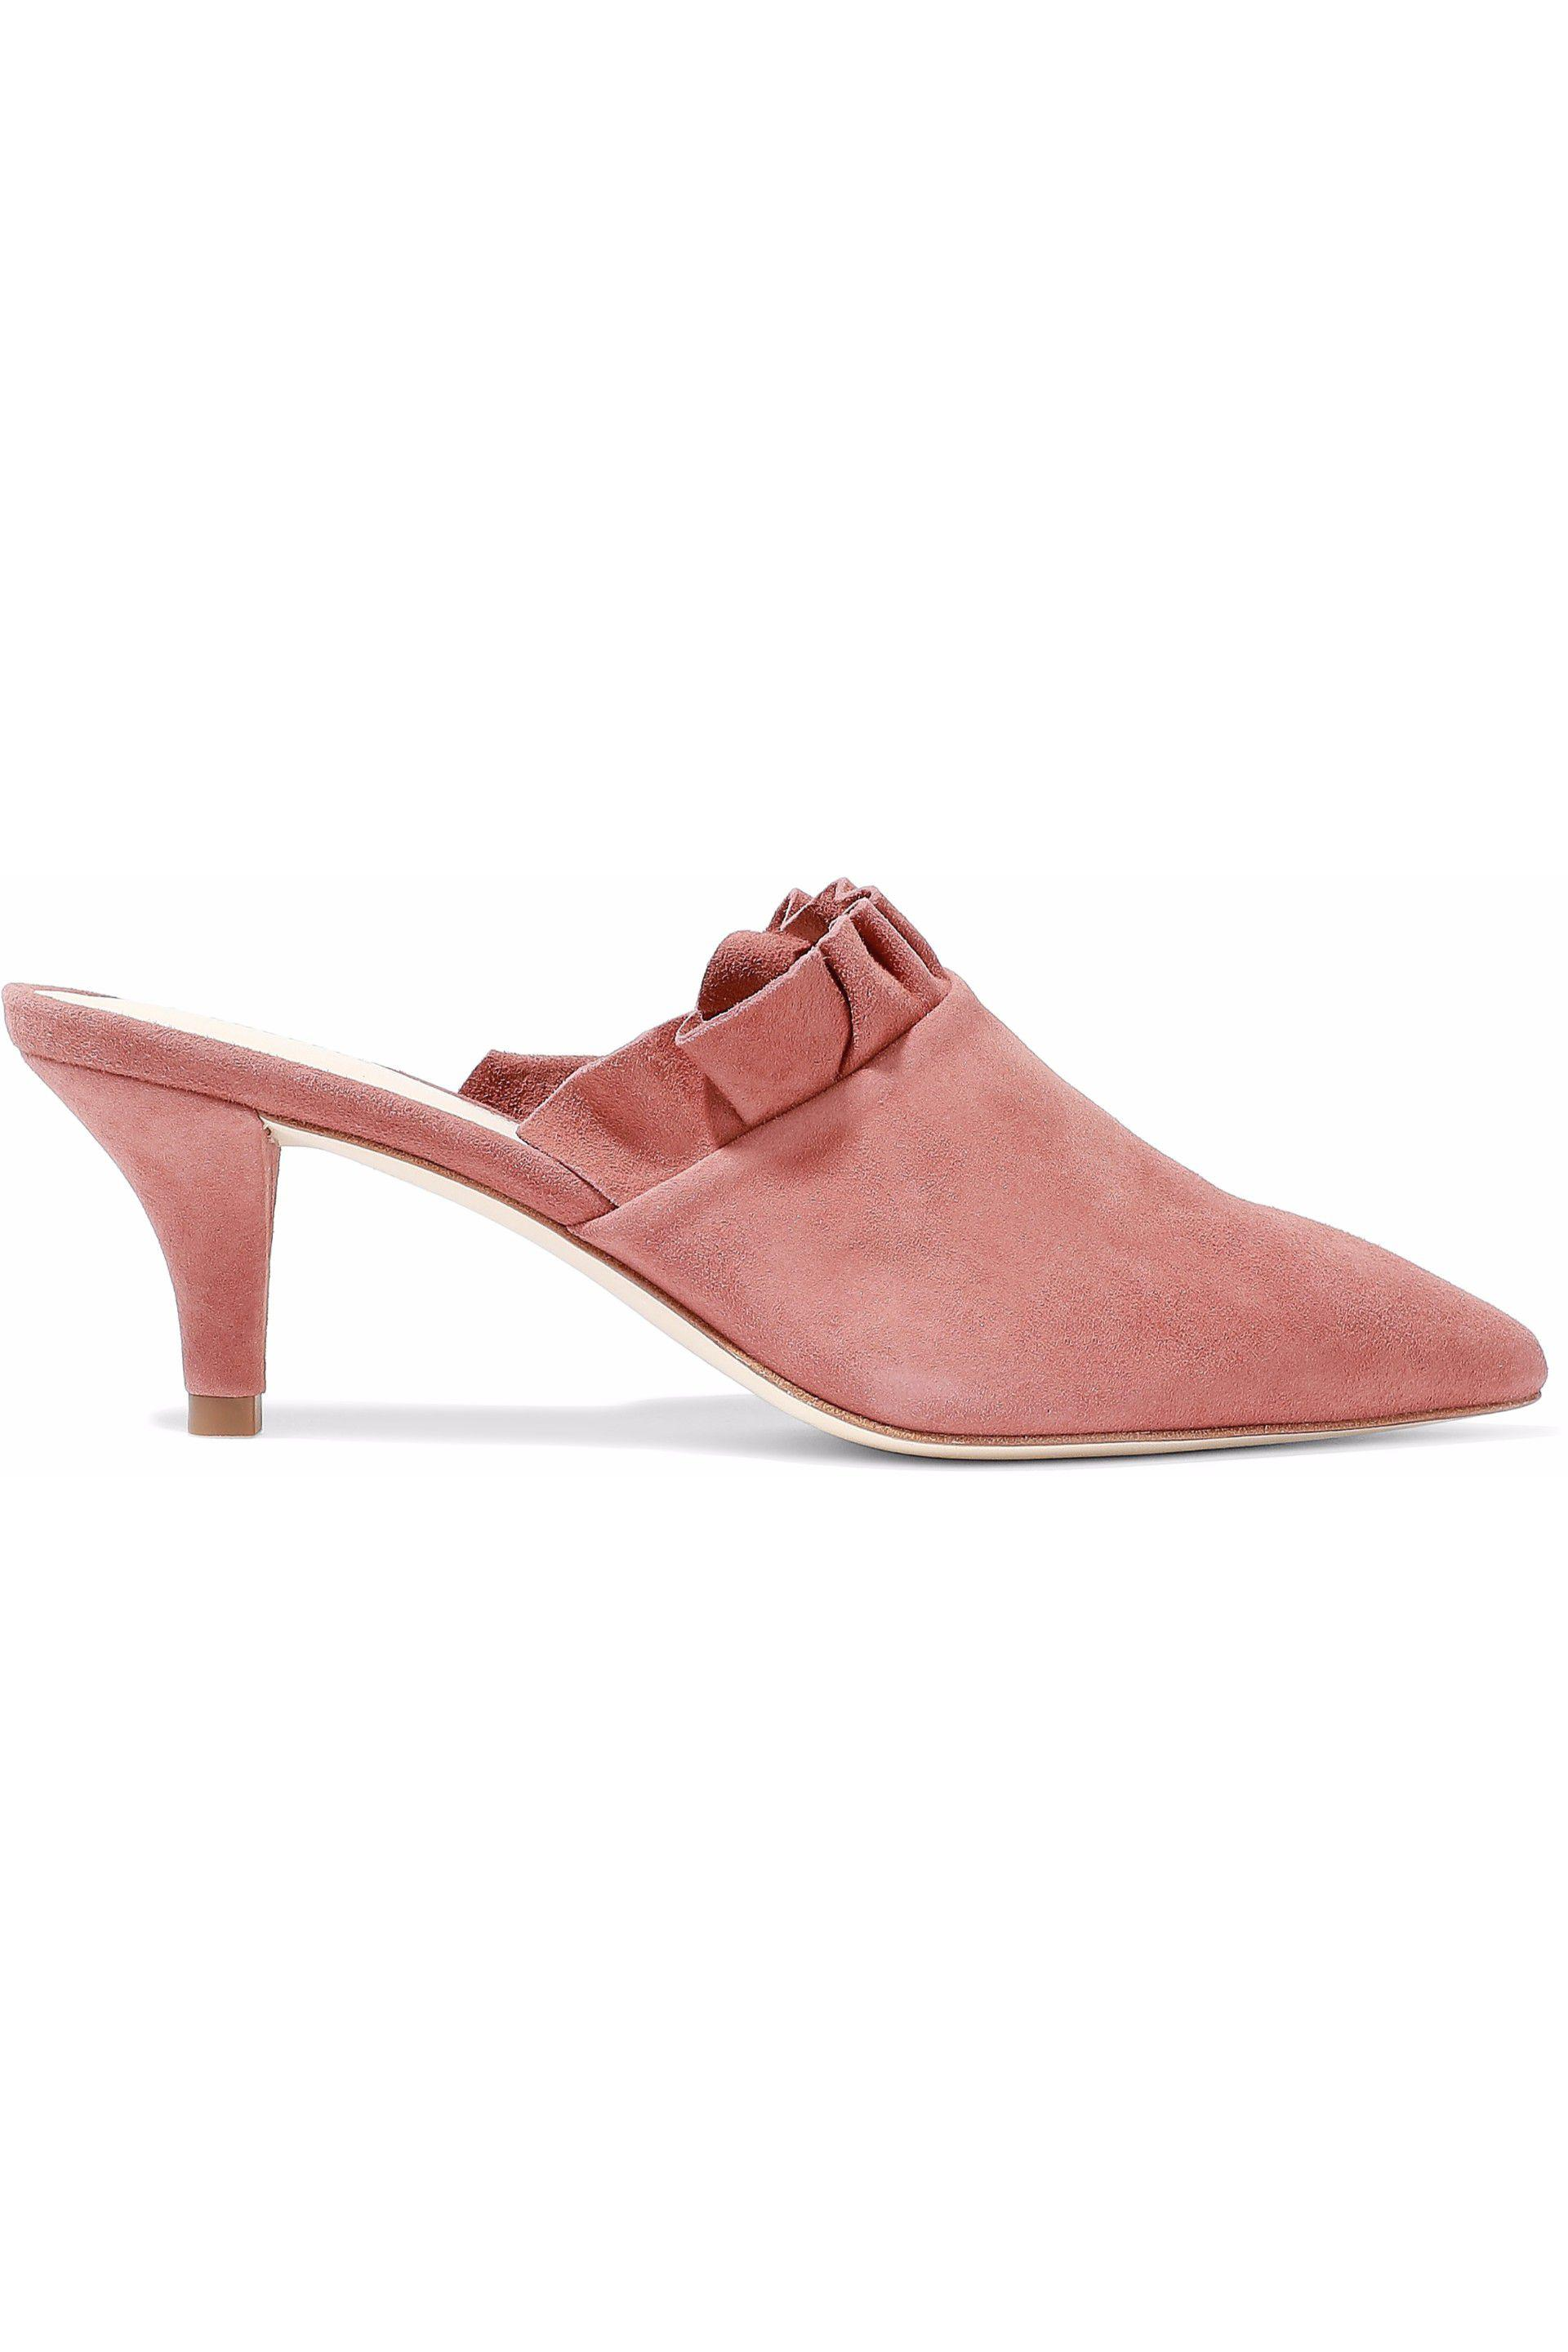 sale from china Loeffler Randall Ruffle-Trimmed Suede Mules w/ Tags sale reliable discount countdown package buy cheap genuine discount Inexpensive PQewAXh